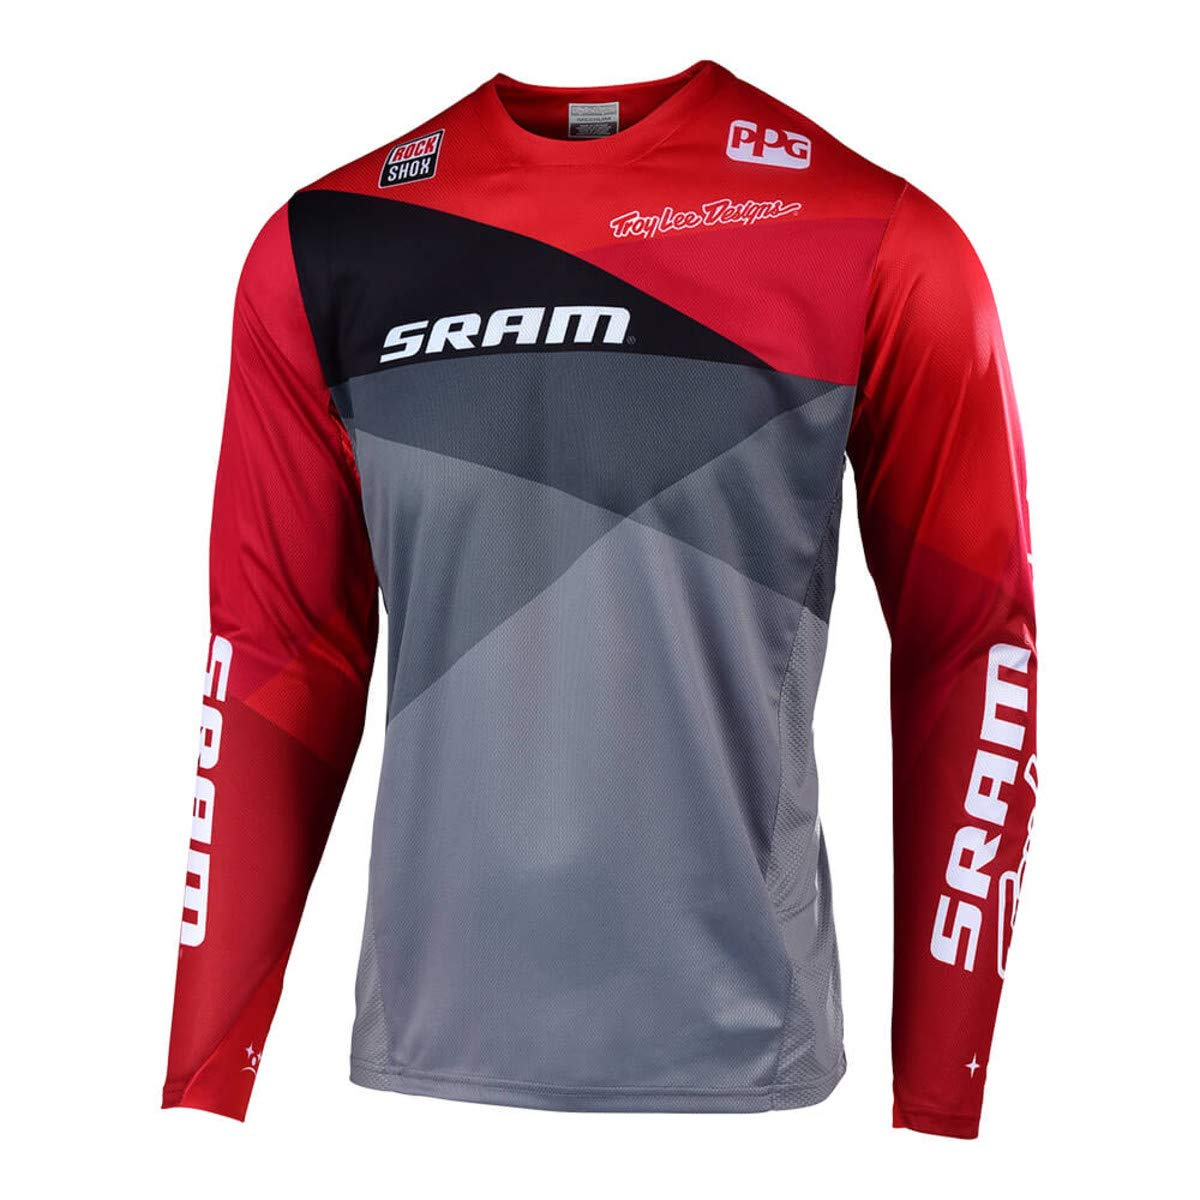 Troy Lee Designs Sprint Sram Jersey - Men's Jet Gray/Red, S